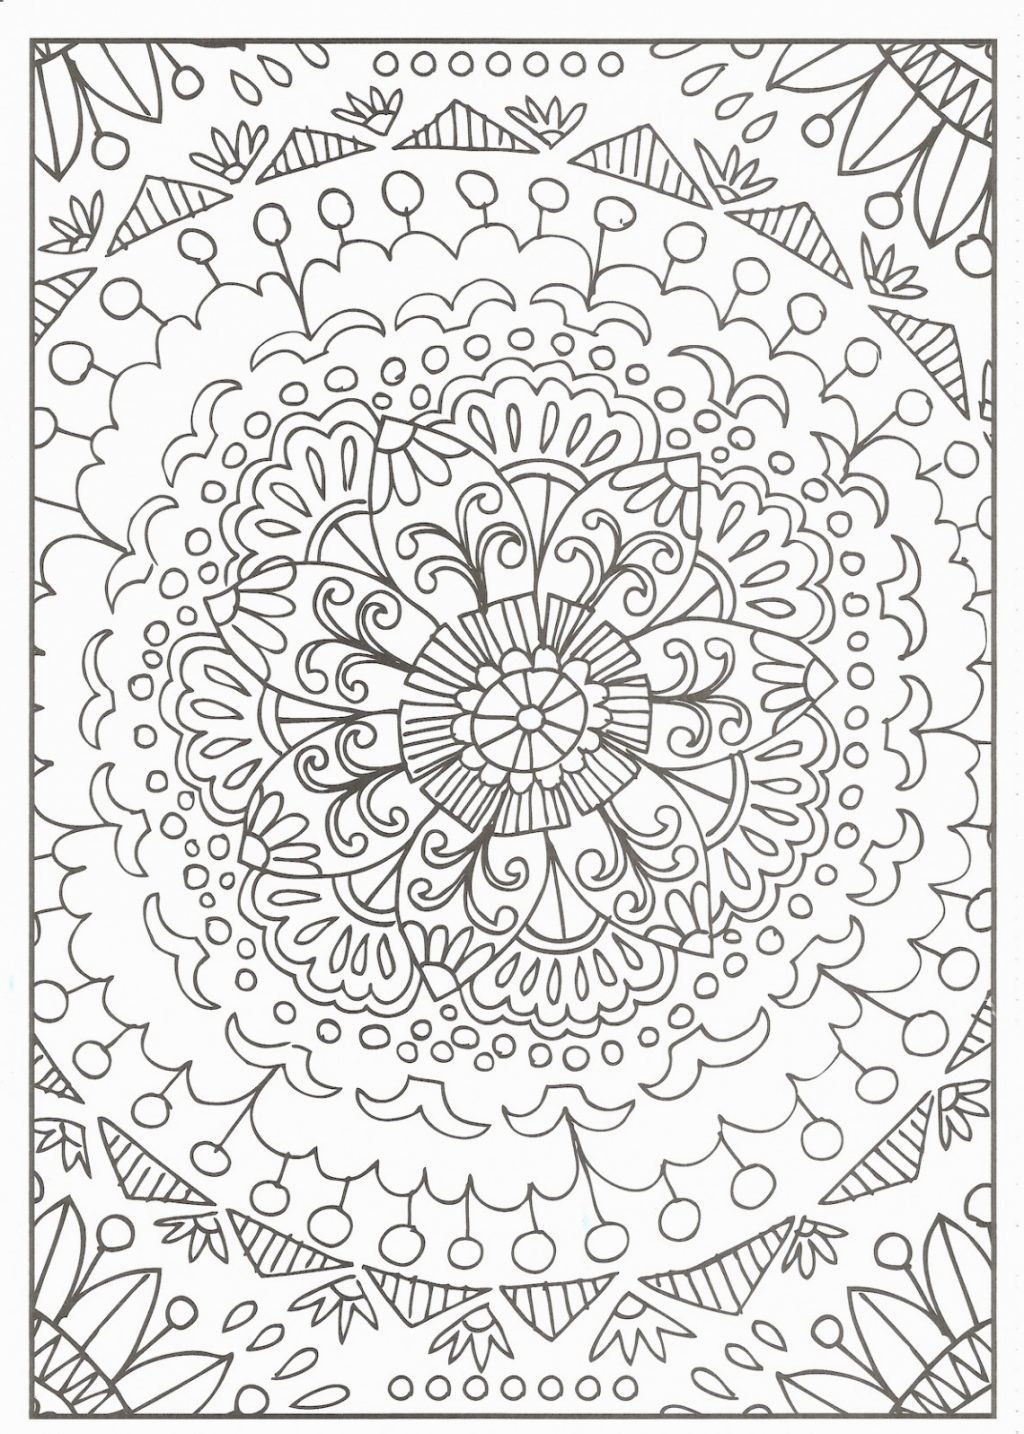 Pre K Coloring Sheets Printable Unique Coloring Pages Awesome Coloring Pages For Adults Hulk Hanukkah Wallpaper Iphone